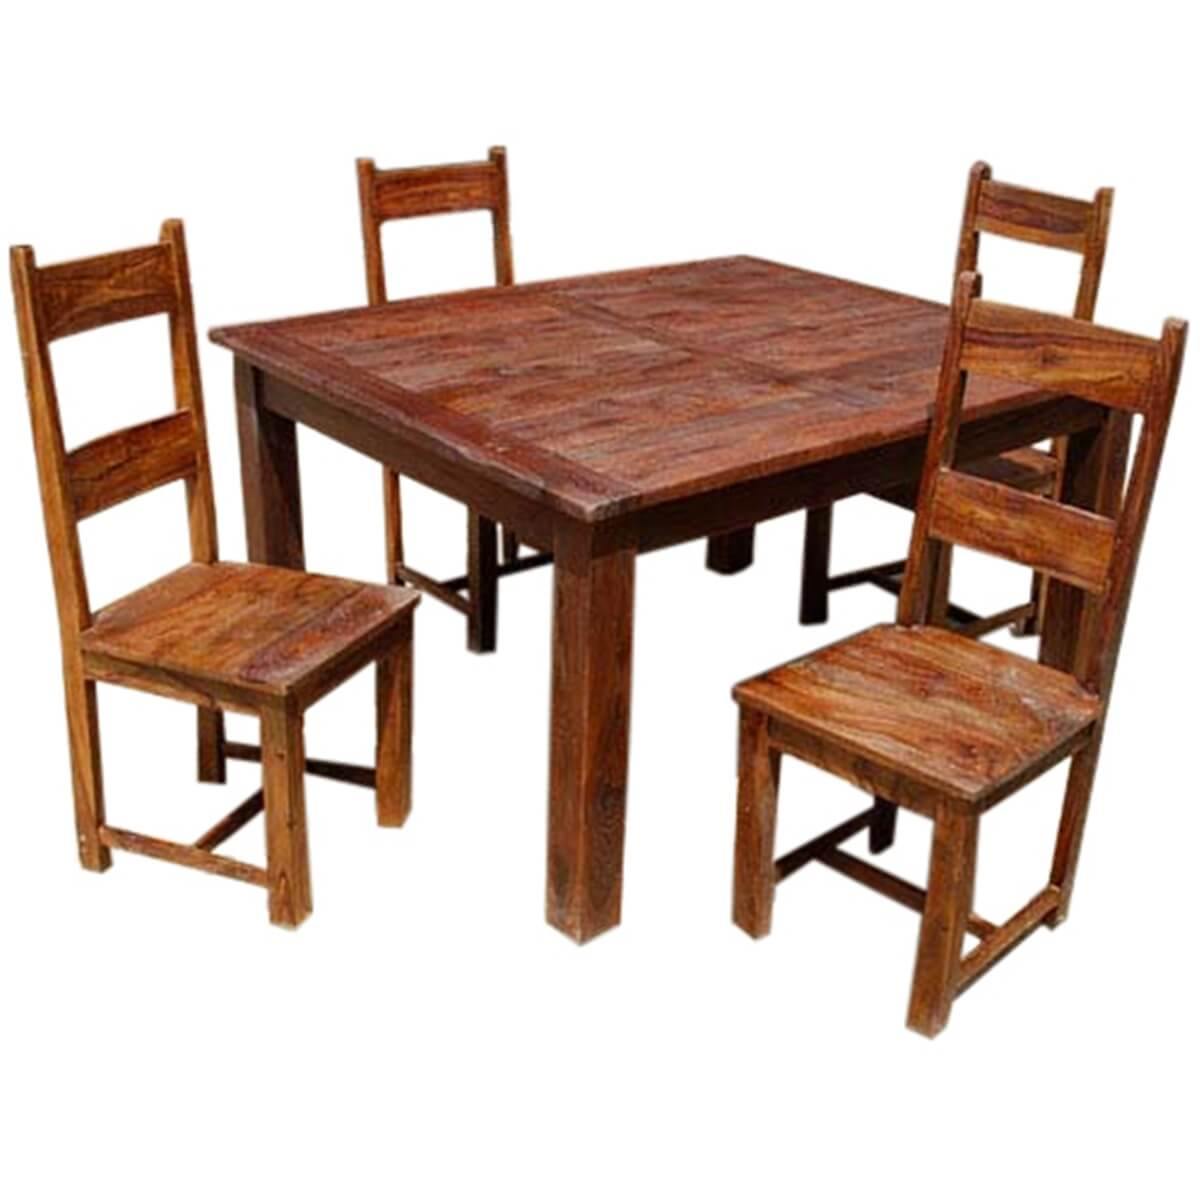 Rustic Wooden Dining Room Table ~ Rustic solid wood appalachian dining room table chair set